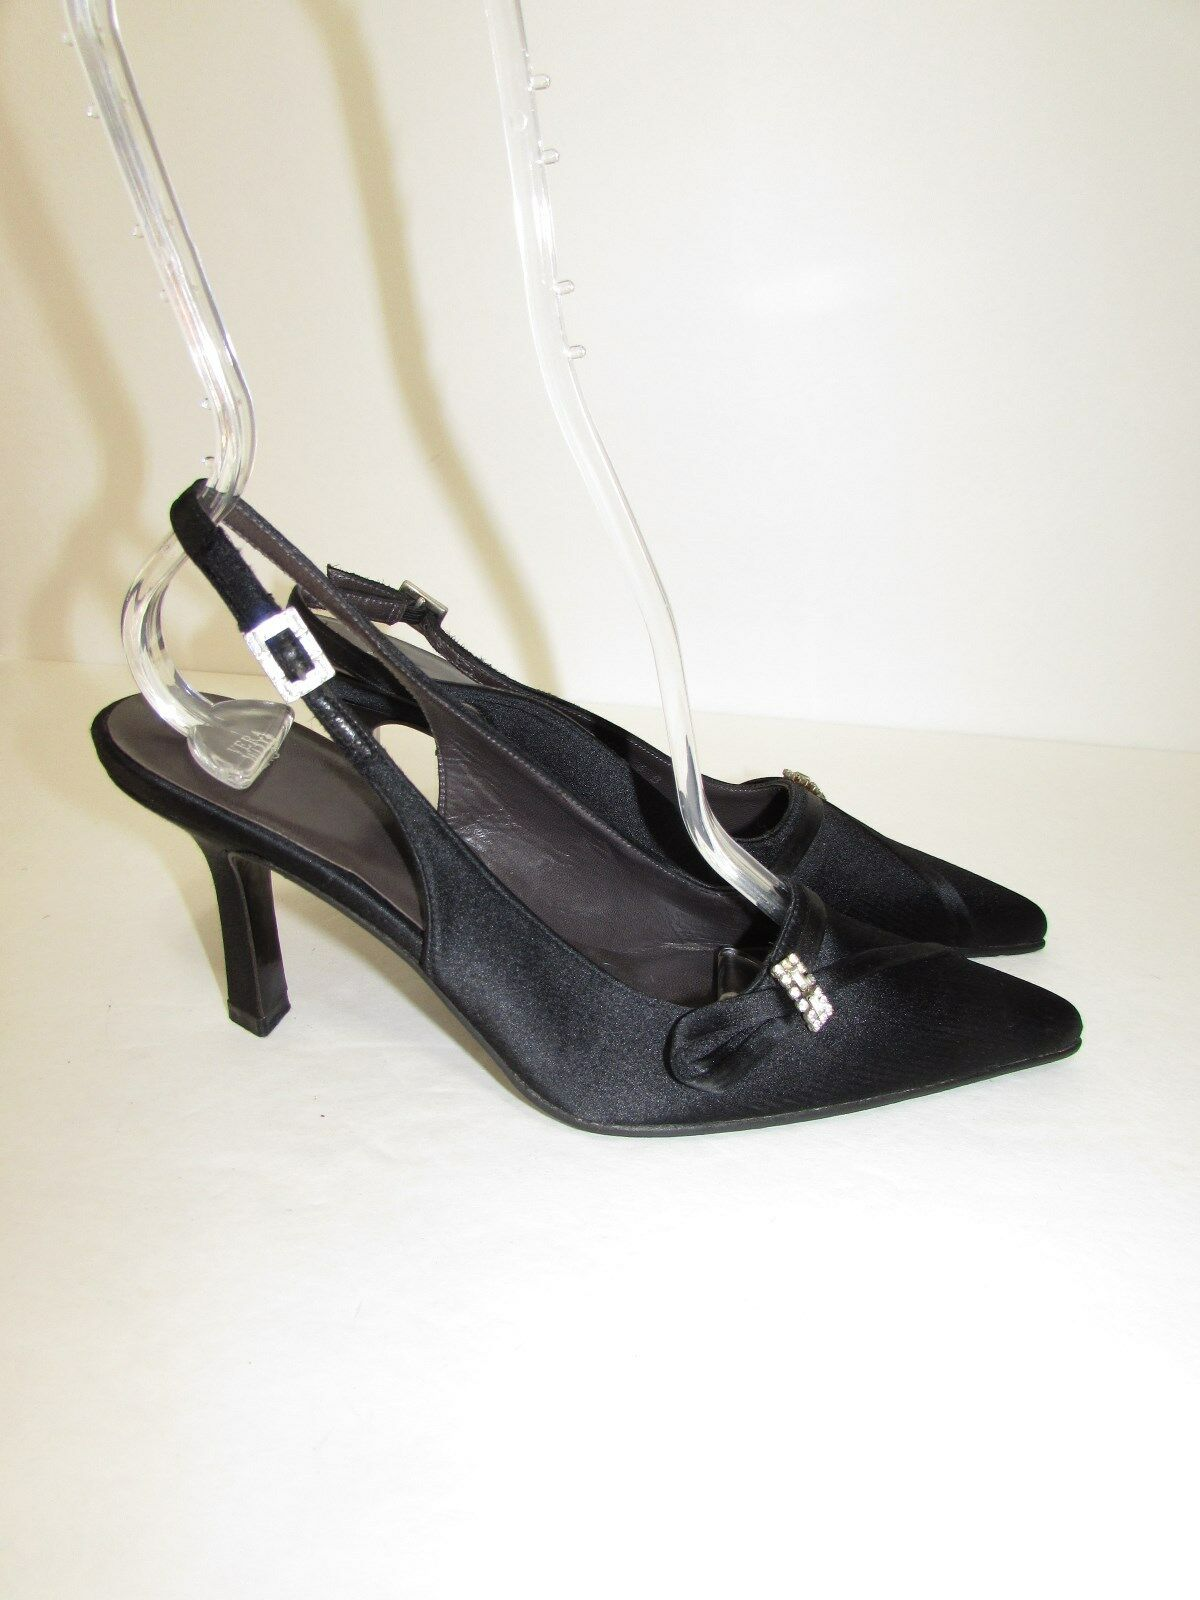 VERA WANG SATIN BLACK Pointed Toe Toe Pointed Jeweled Singbacks Heels Pumps Schuhes 6 B NEW 82941a